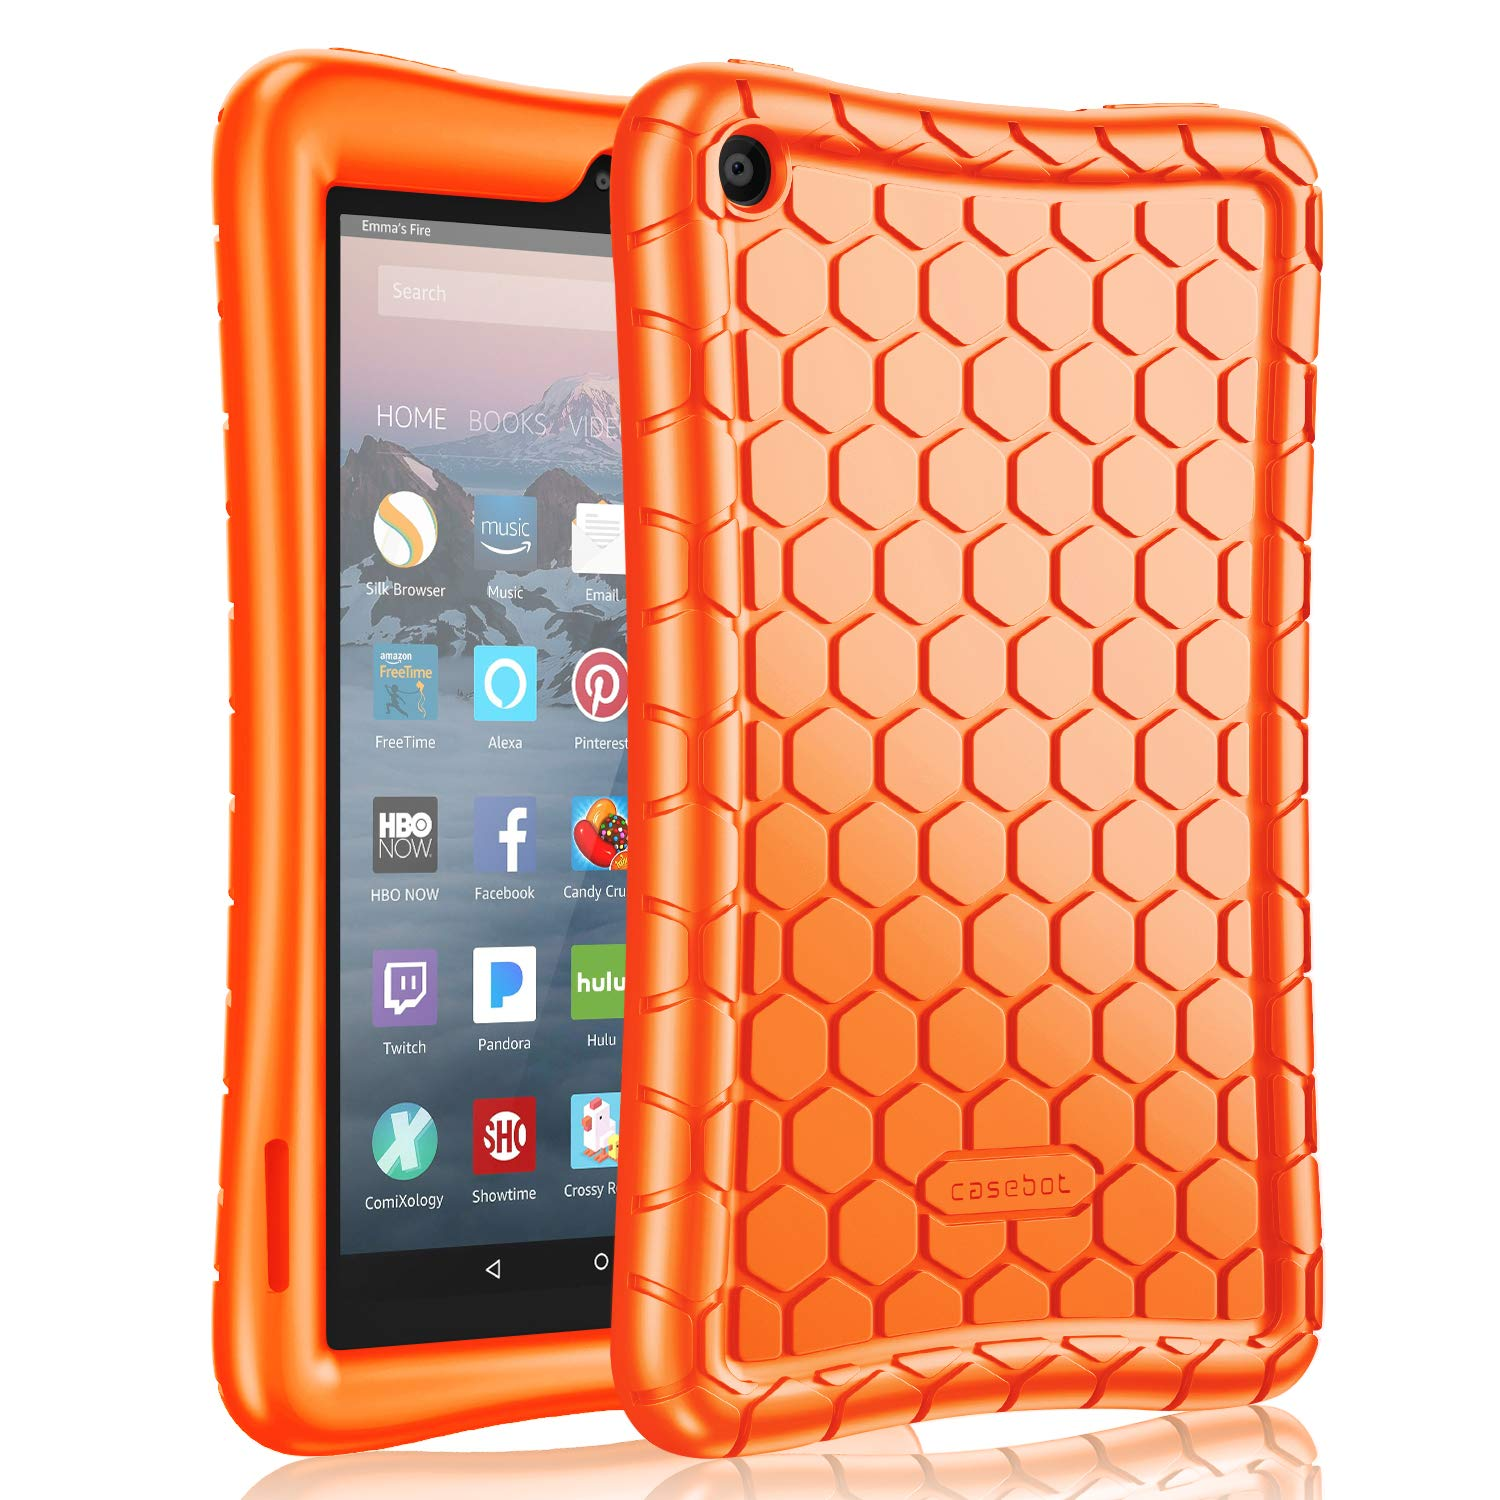 Fintie Silicone Case for All-New Amazon Fire 7 Tablet (9th Generation, 2019 Release) - [Honey Comb Series] [Kids Friendly] Light Weight [Anti Slip] Shock Proof Protective Cover, Orange